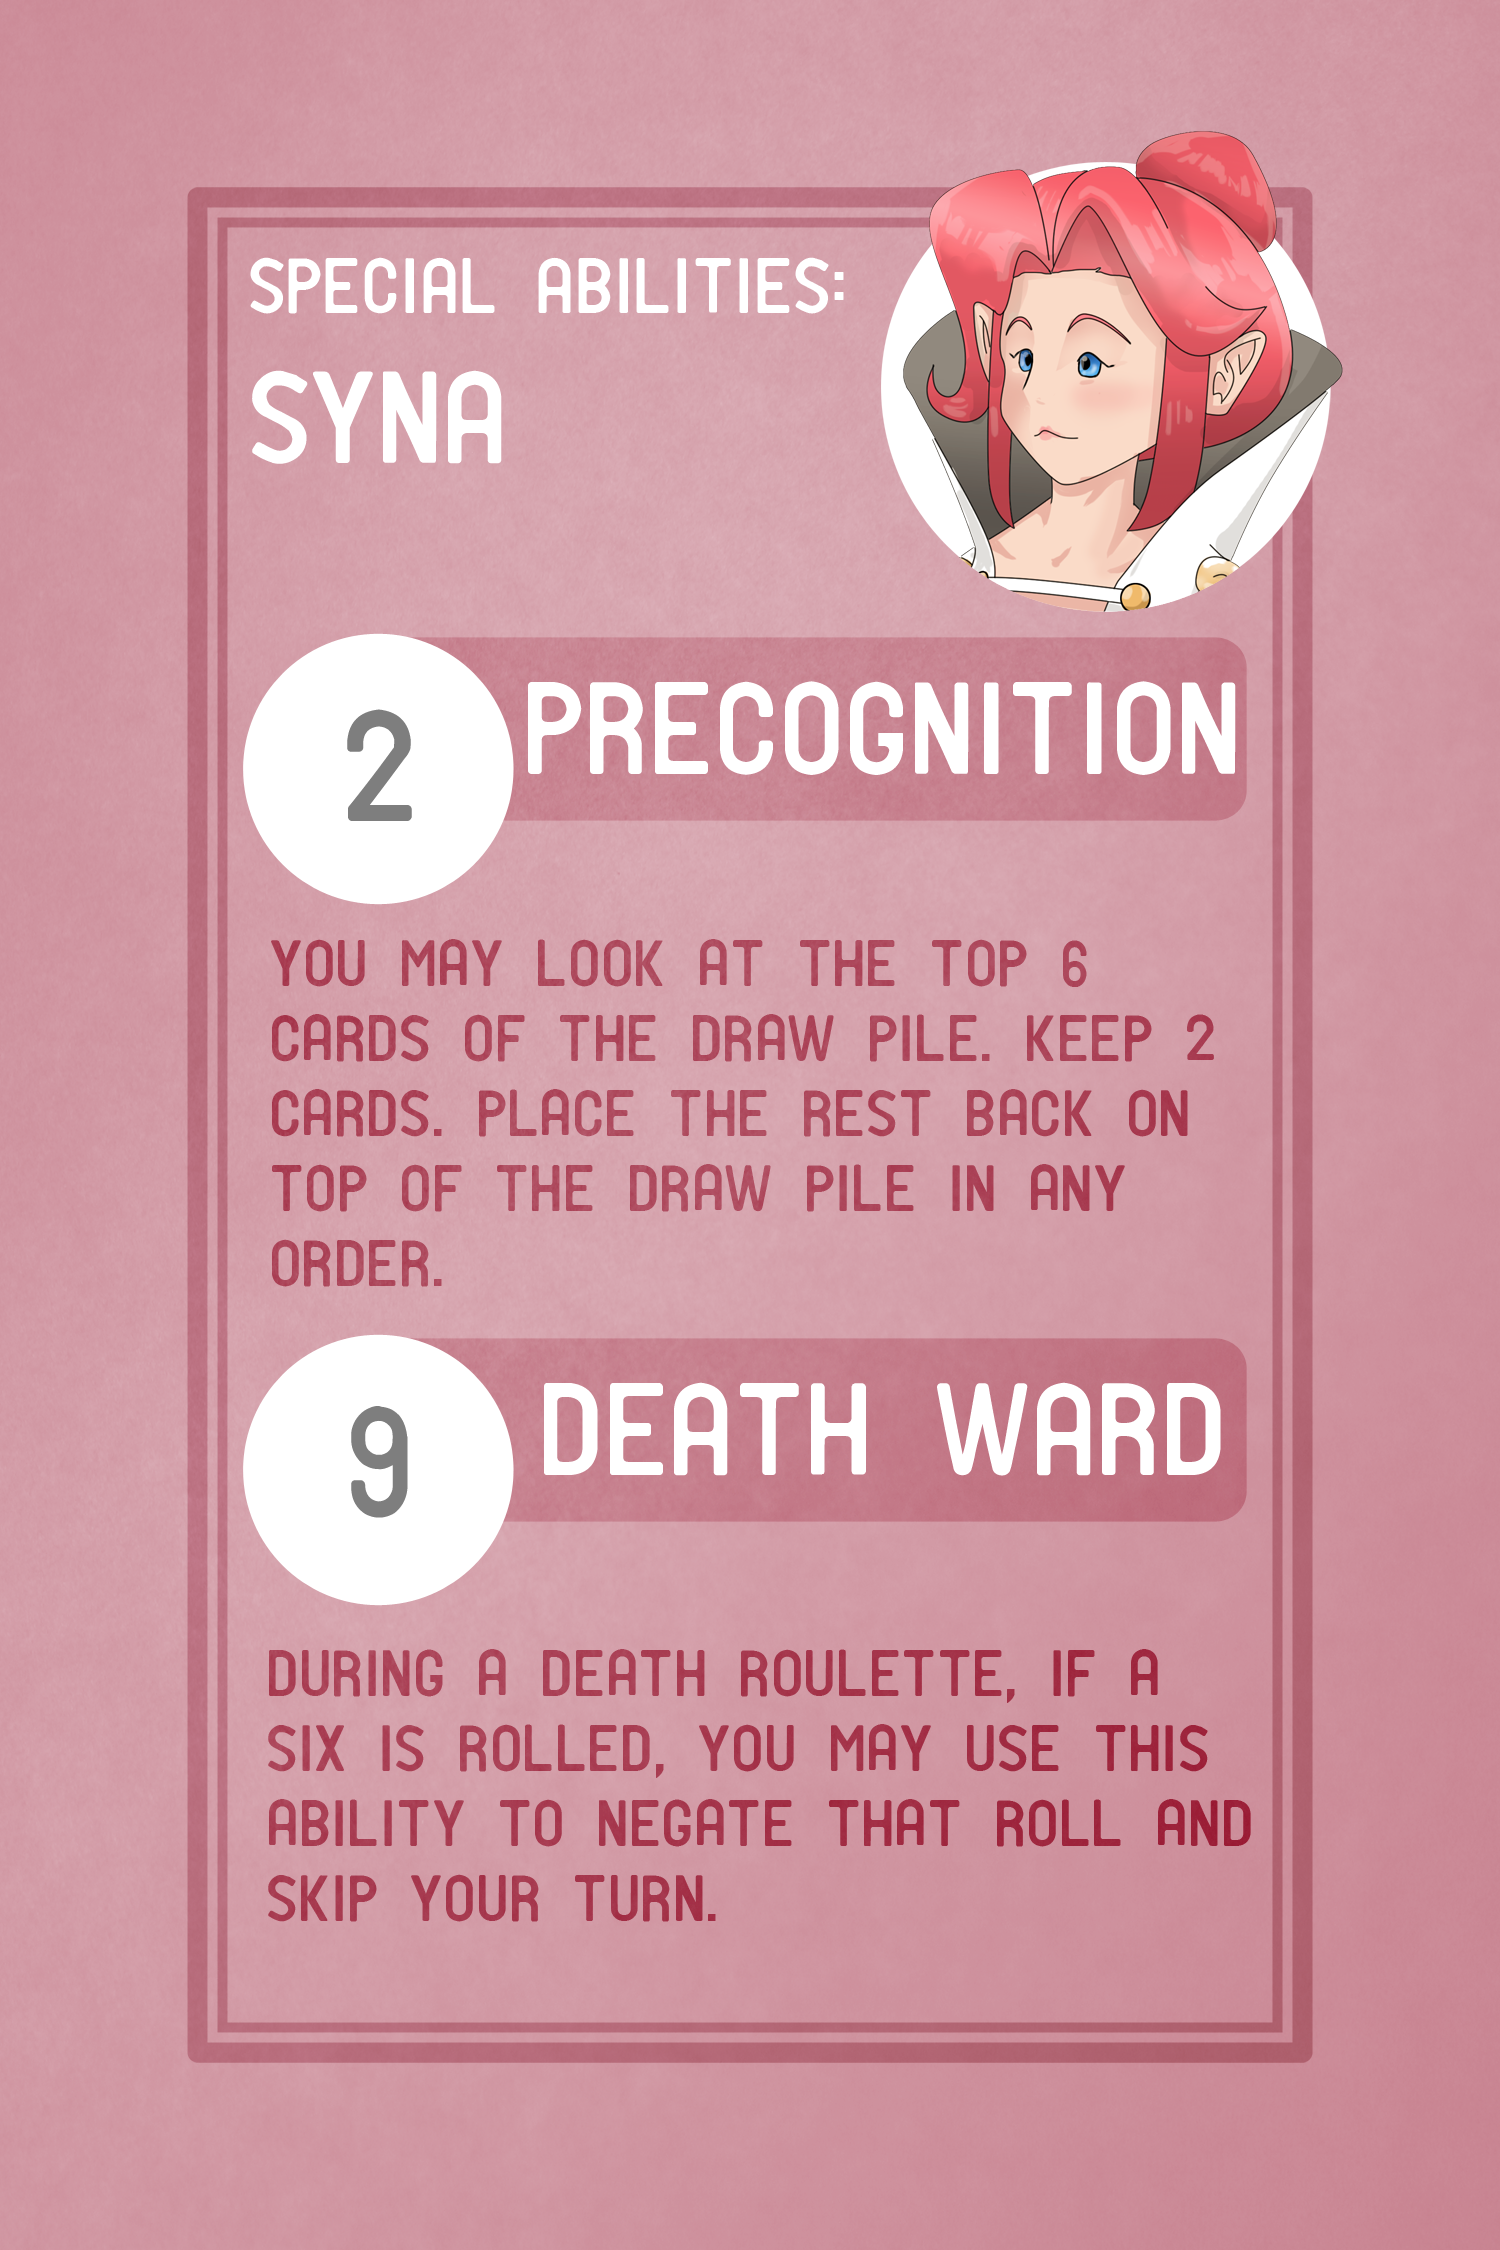 role_ability_syna.png